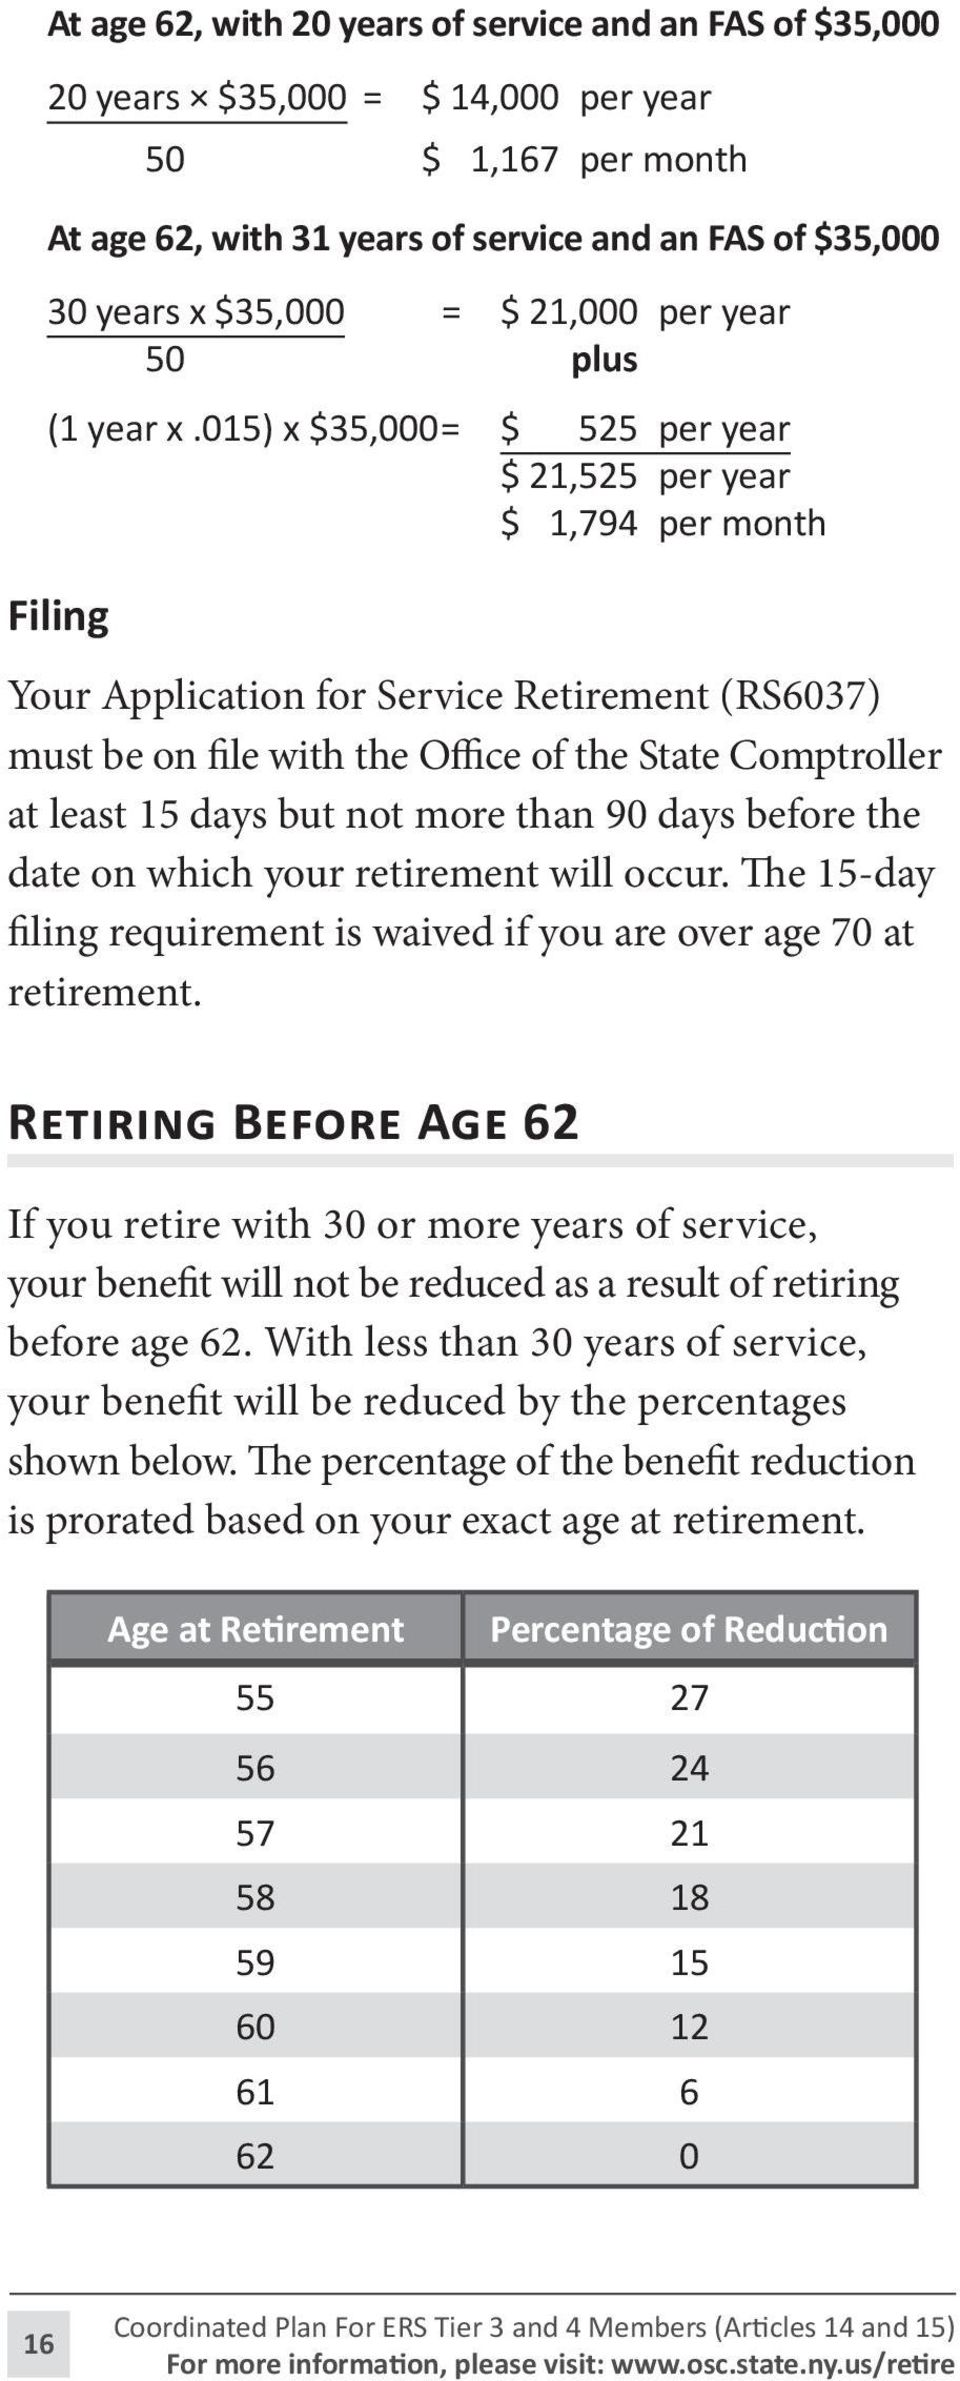 015) x $35,000= $ 525 per year $ 21,525 per year $ 1,794 per month Filing Your Application for Service Retirement (RS6037) must be on file with the Office of the State Comptroller at least 15 days